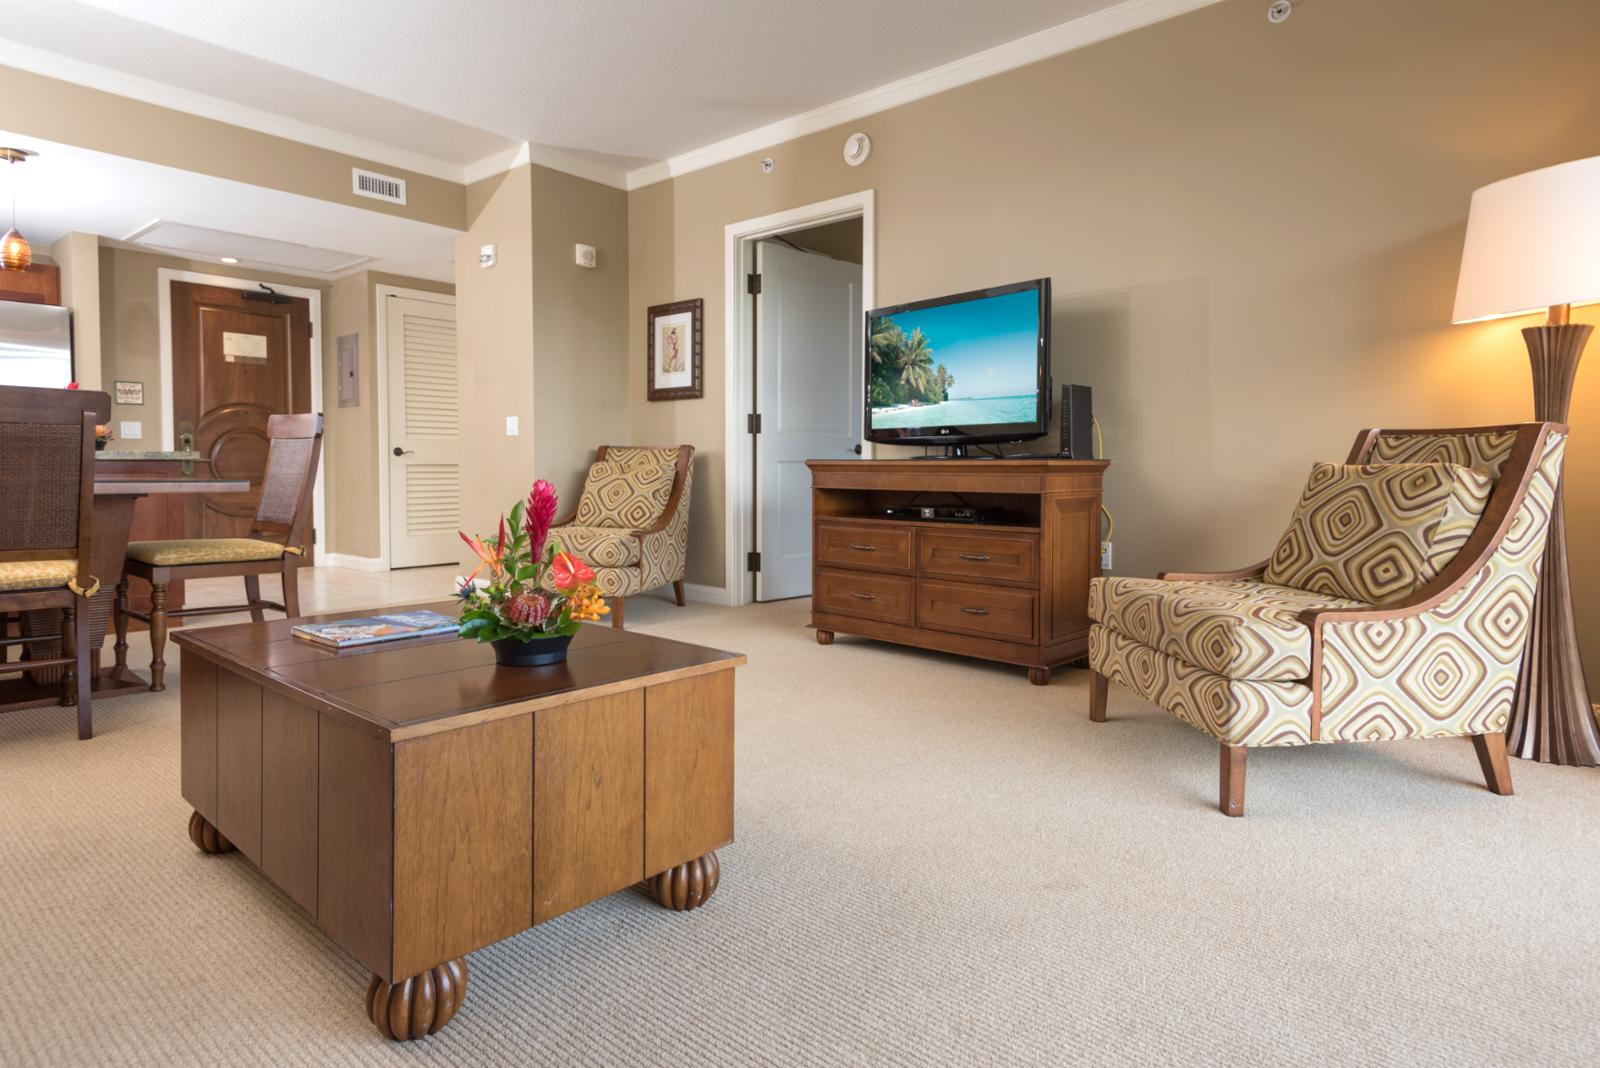 There is a large LG flatscreen TV and comfy lounge chairs in the living room.